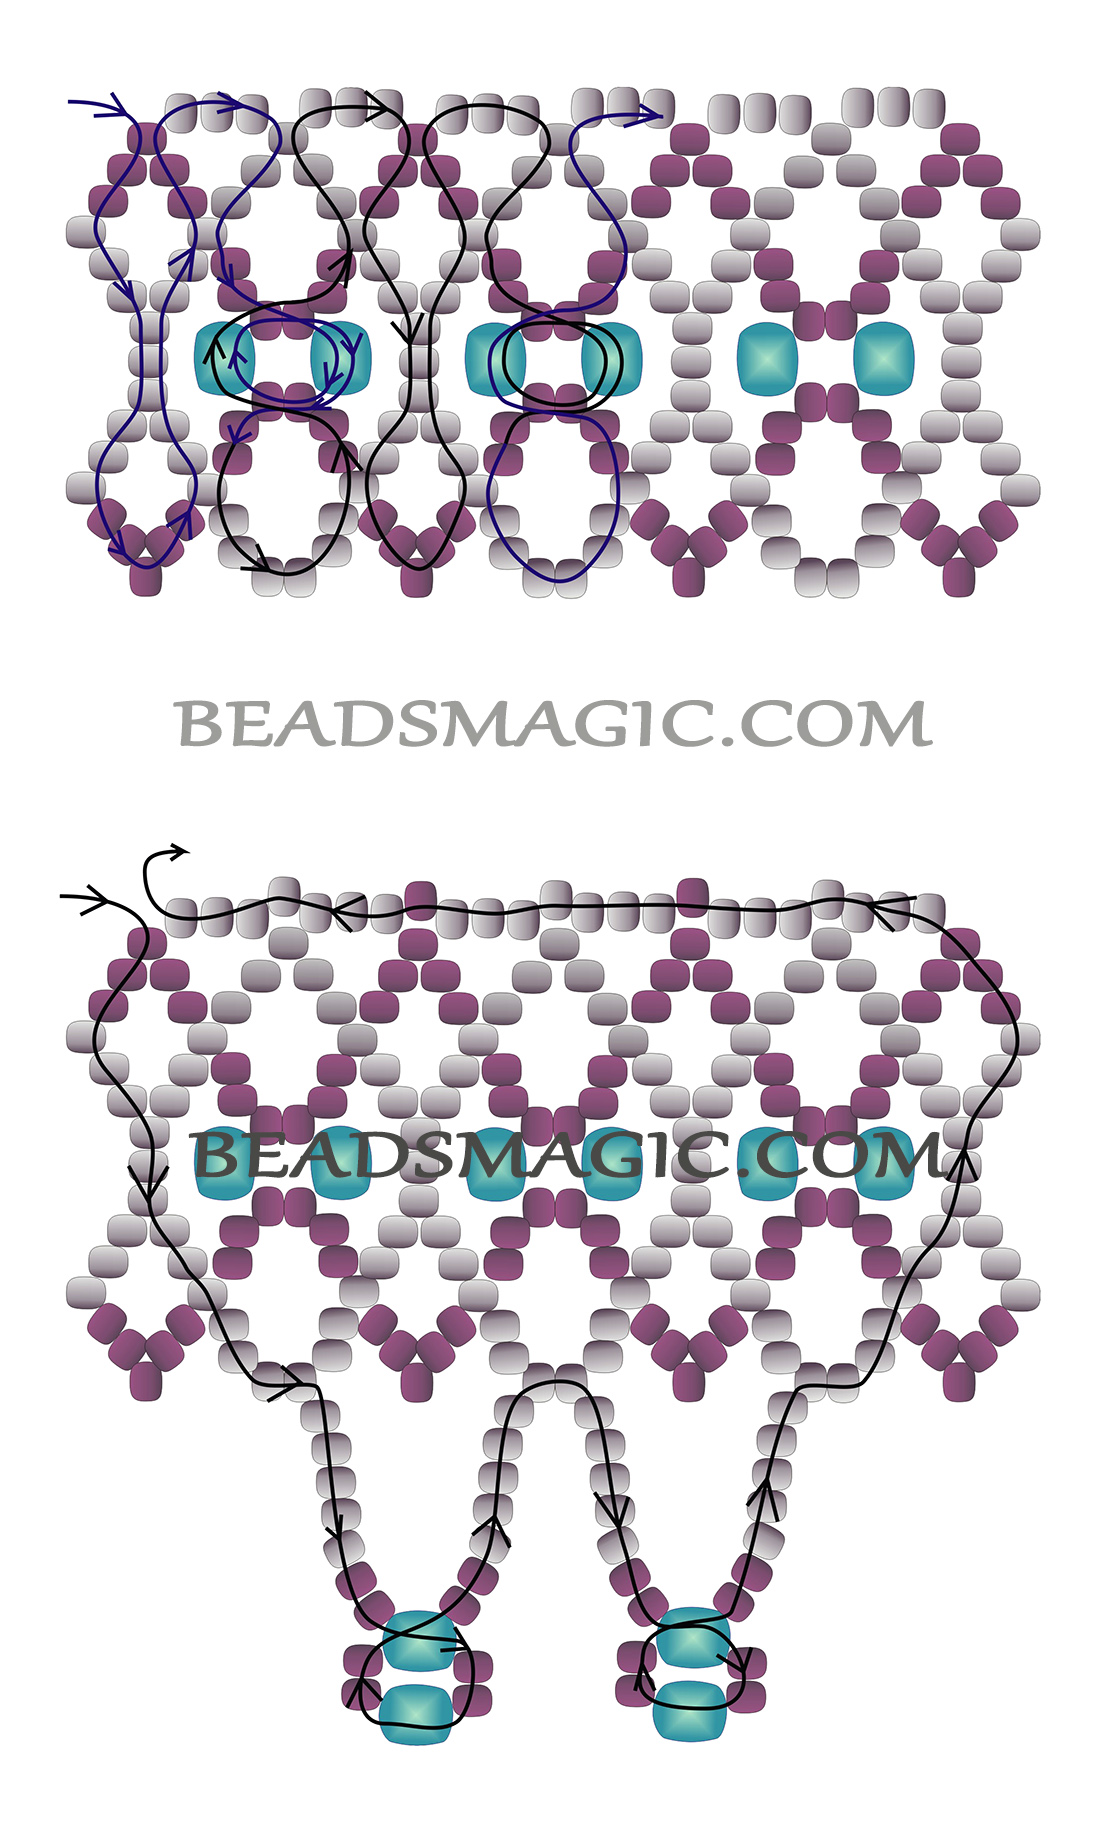 free-beading-necklace-tutorial-pattern-instructions-2